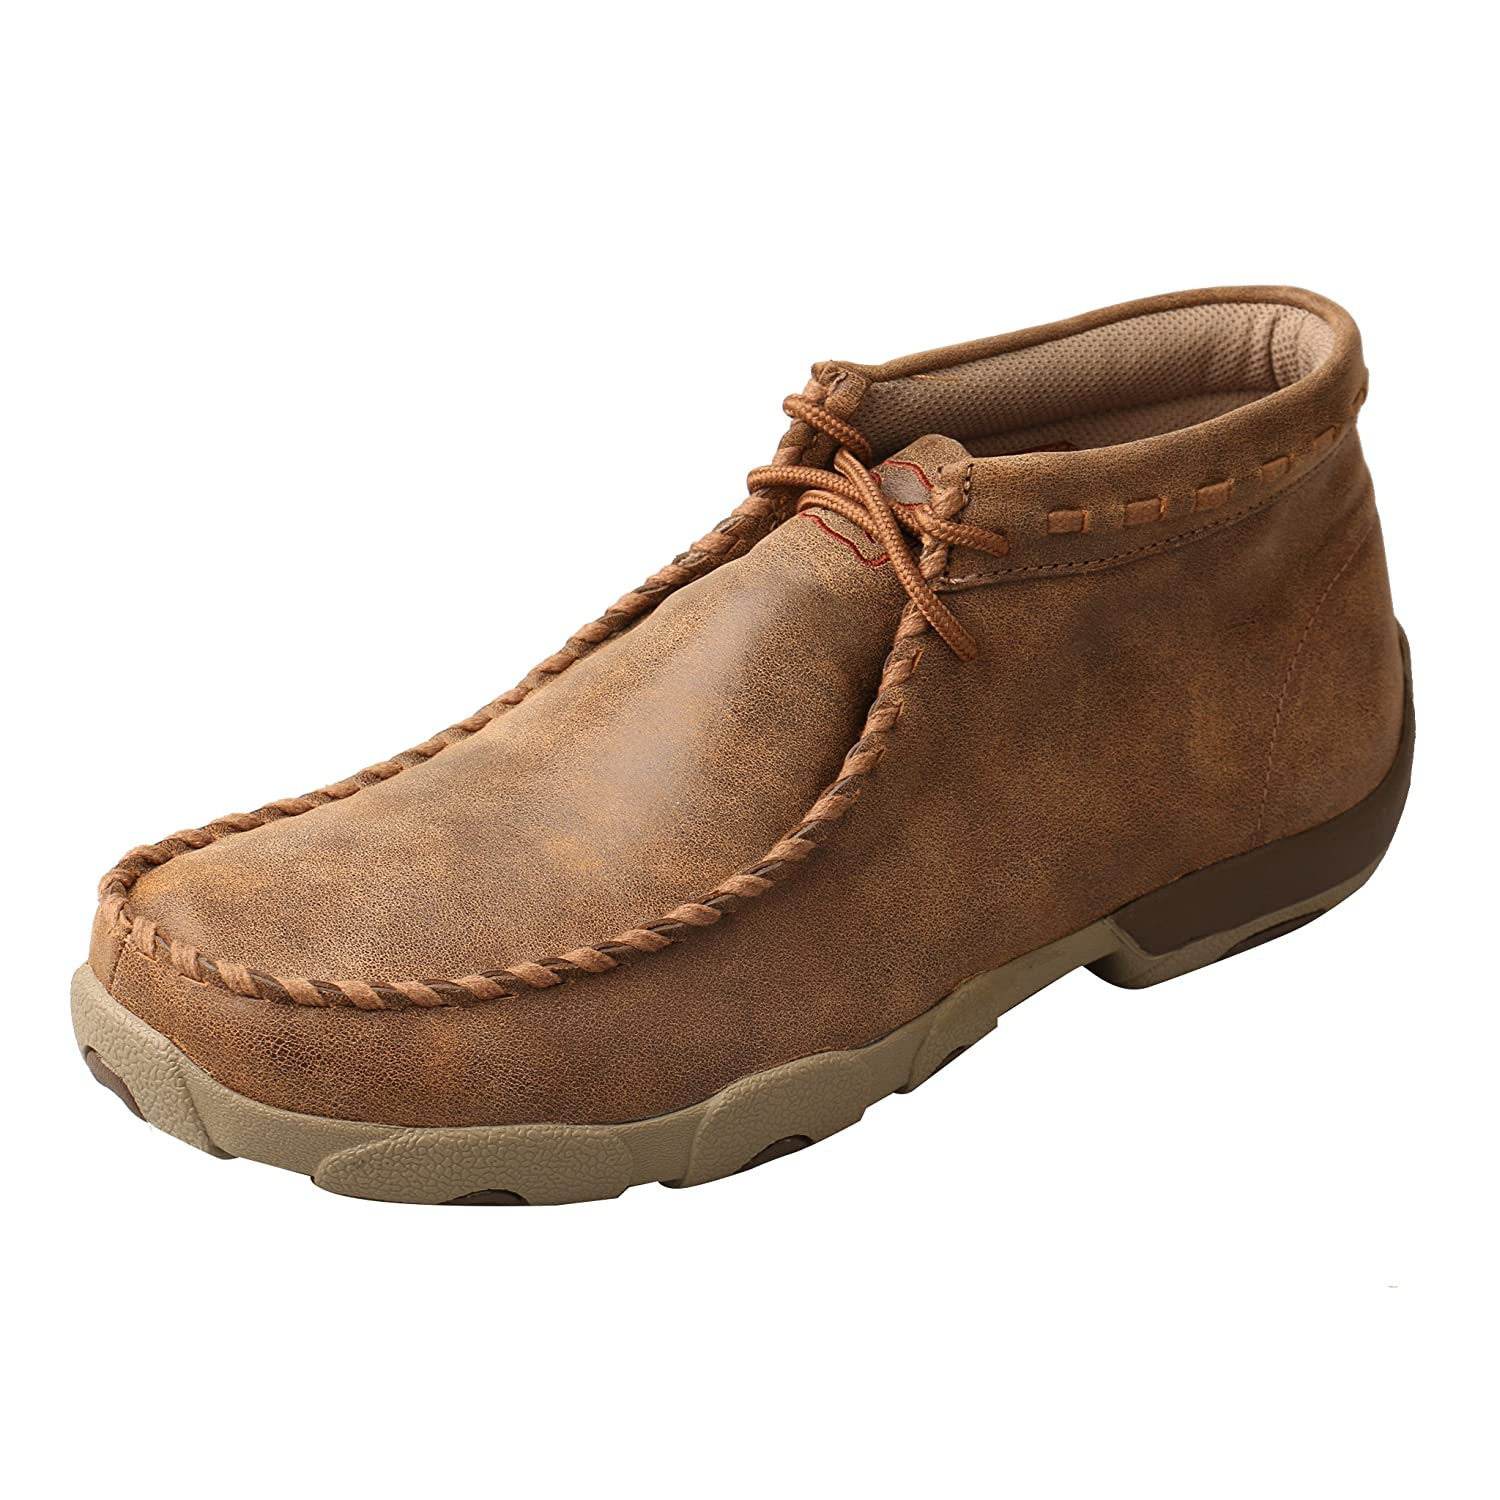 Twisted X Men's Leather Lace-up Rubber Sole Moc Toe Driving Moccasins - Copper Twisted X Boots MDM0014